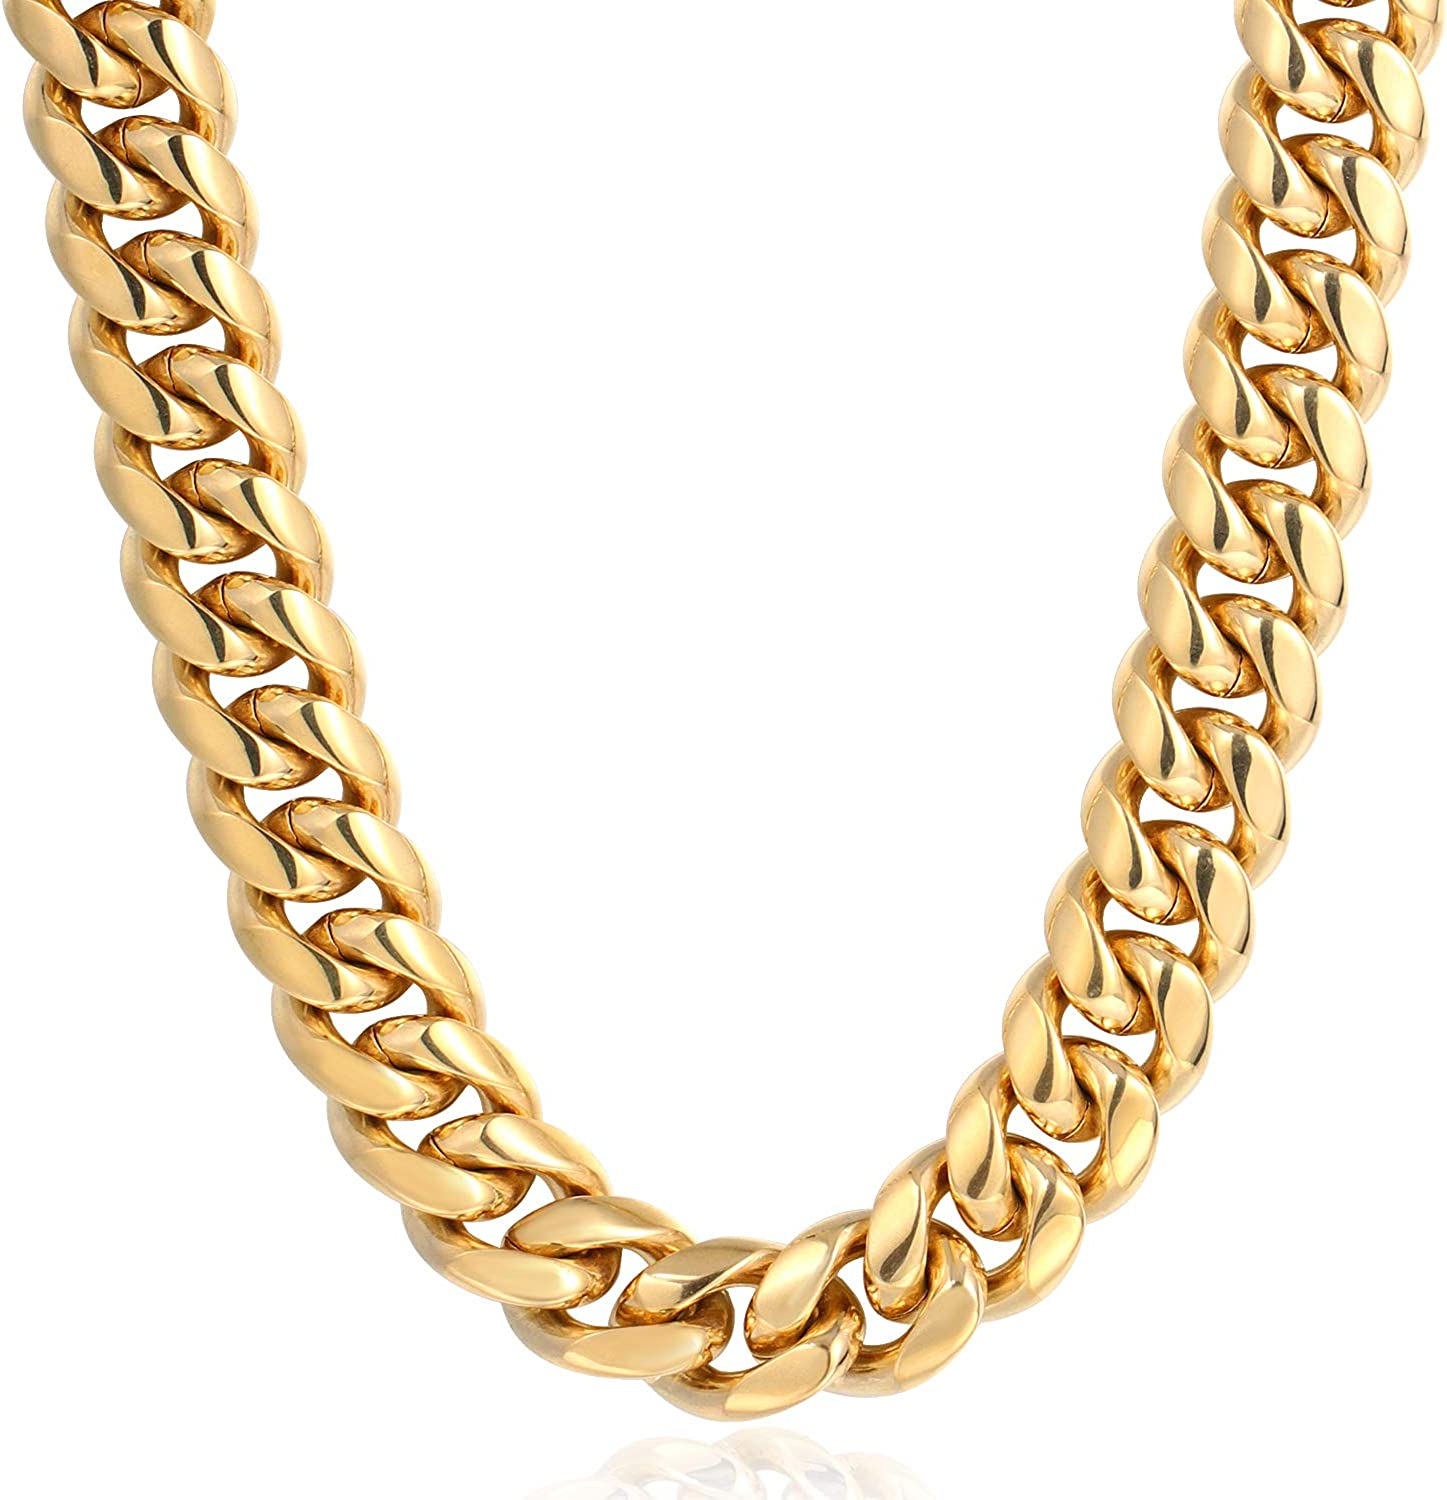 Tripod Heavy Thick Men's Miami Cuban Link Chain- 18K Gold Plated Stainless  Steel 10mm-14mm (10mm30inches) | Amazon.com